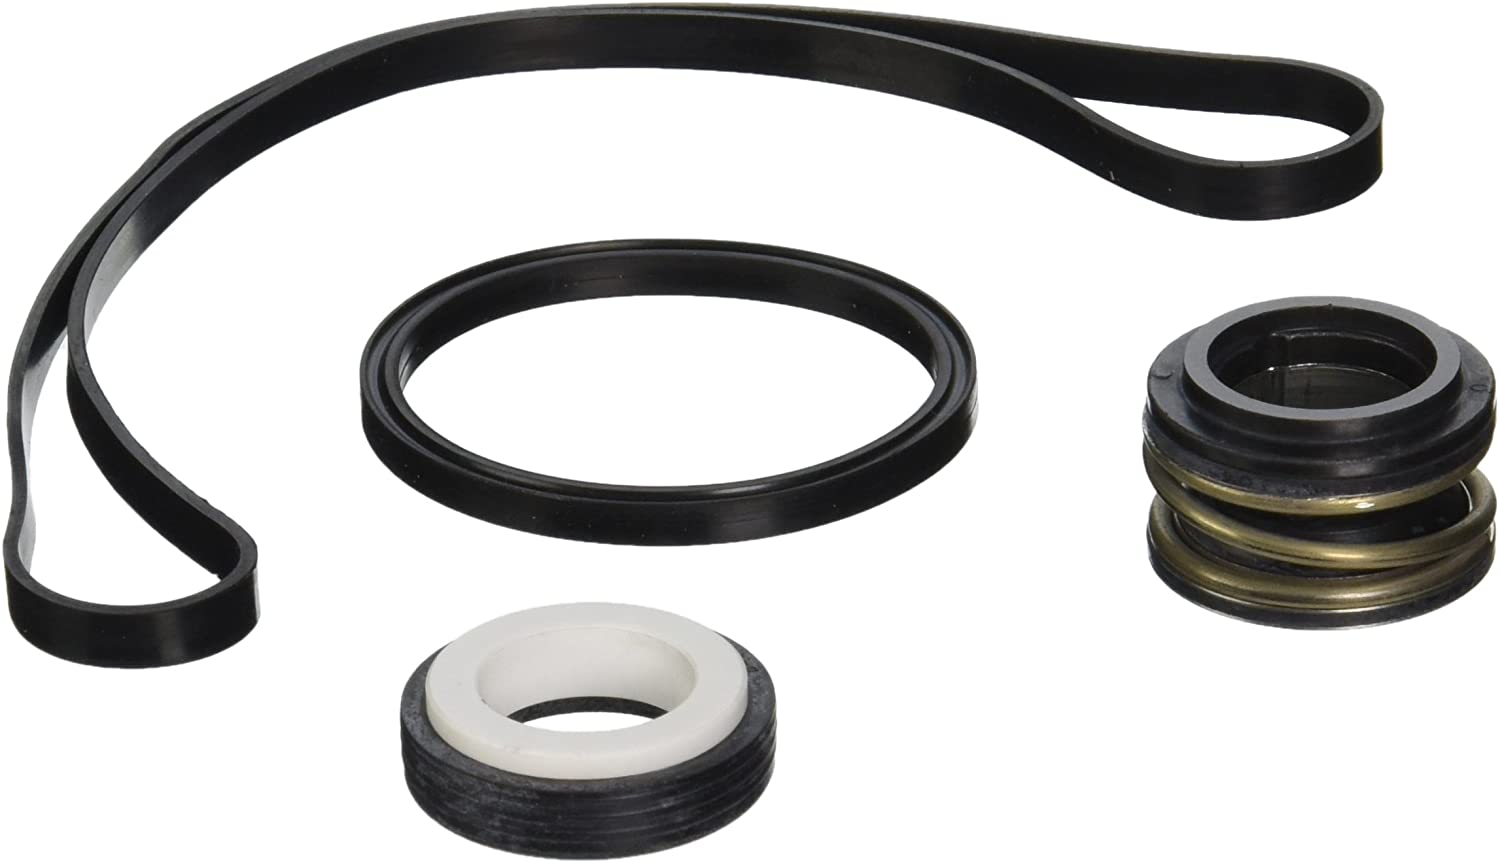 Hayward SPX1600TRA Seal Assembly Replacement Kit for Hayward Superpump and MaxFlo Pump